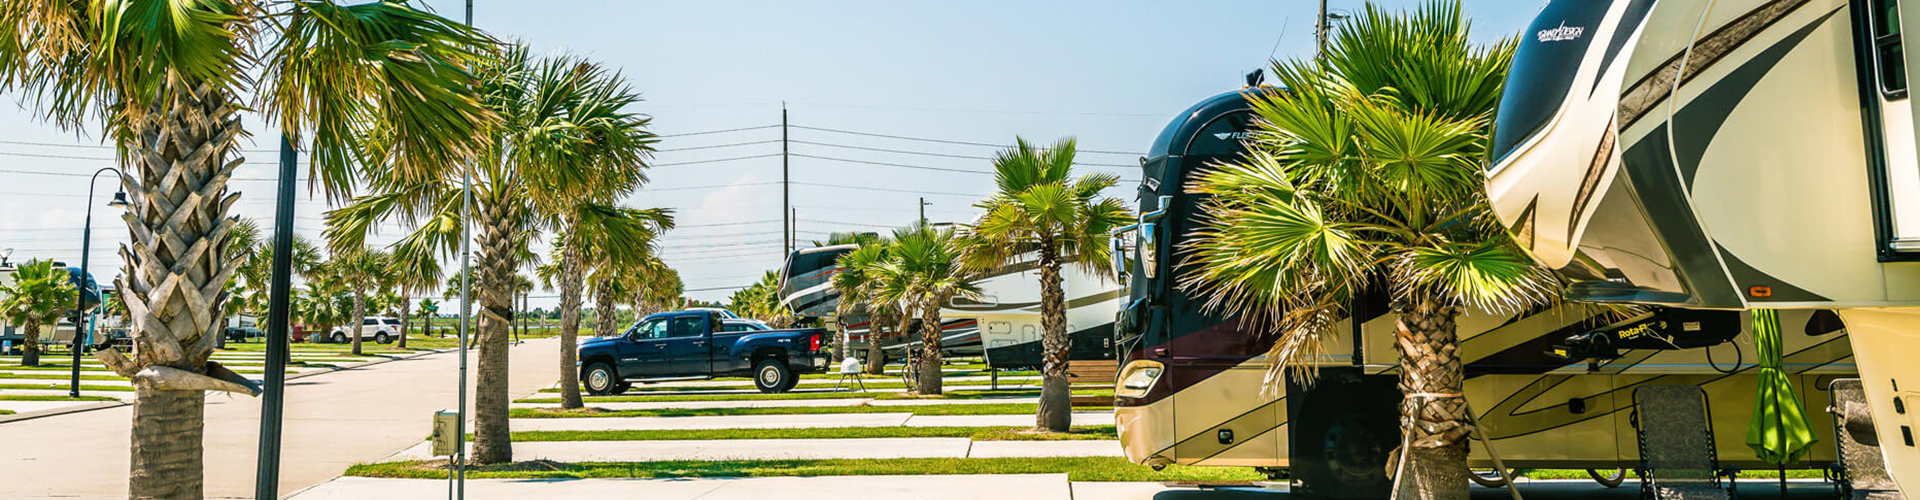 galveston-rv-park